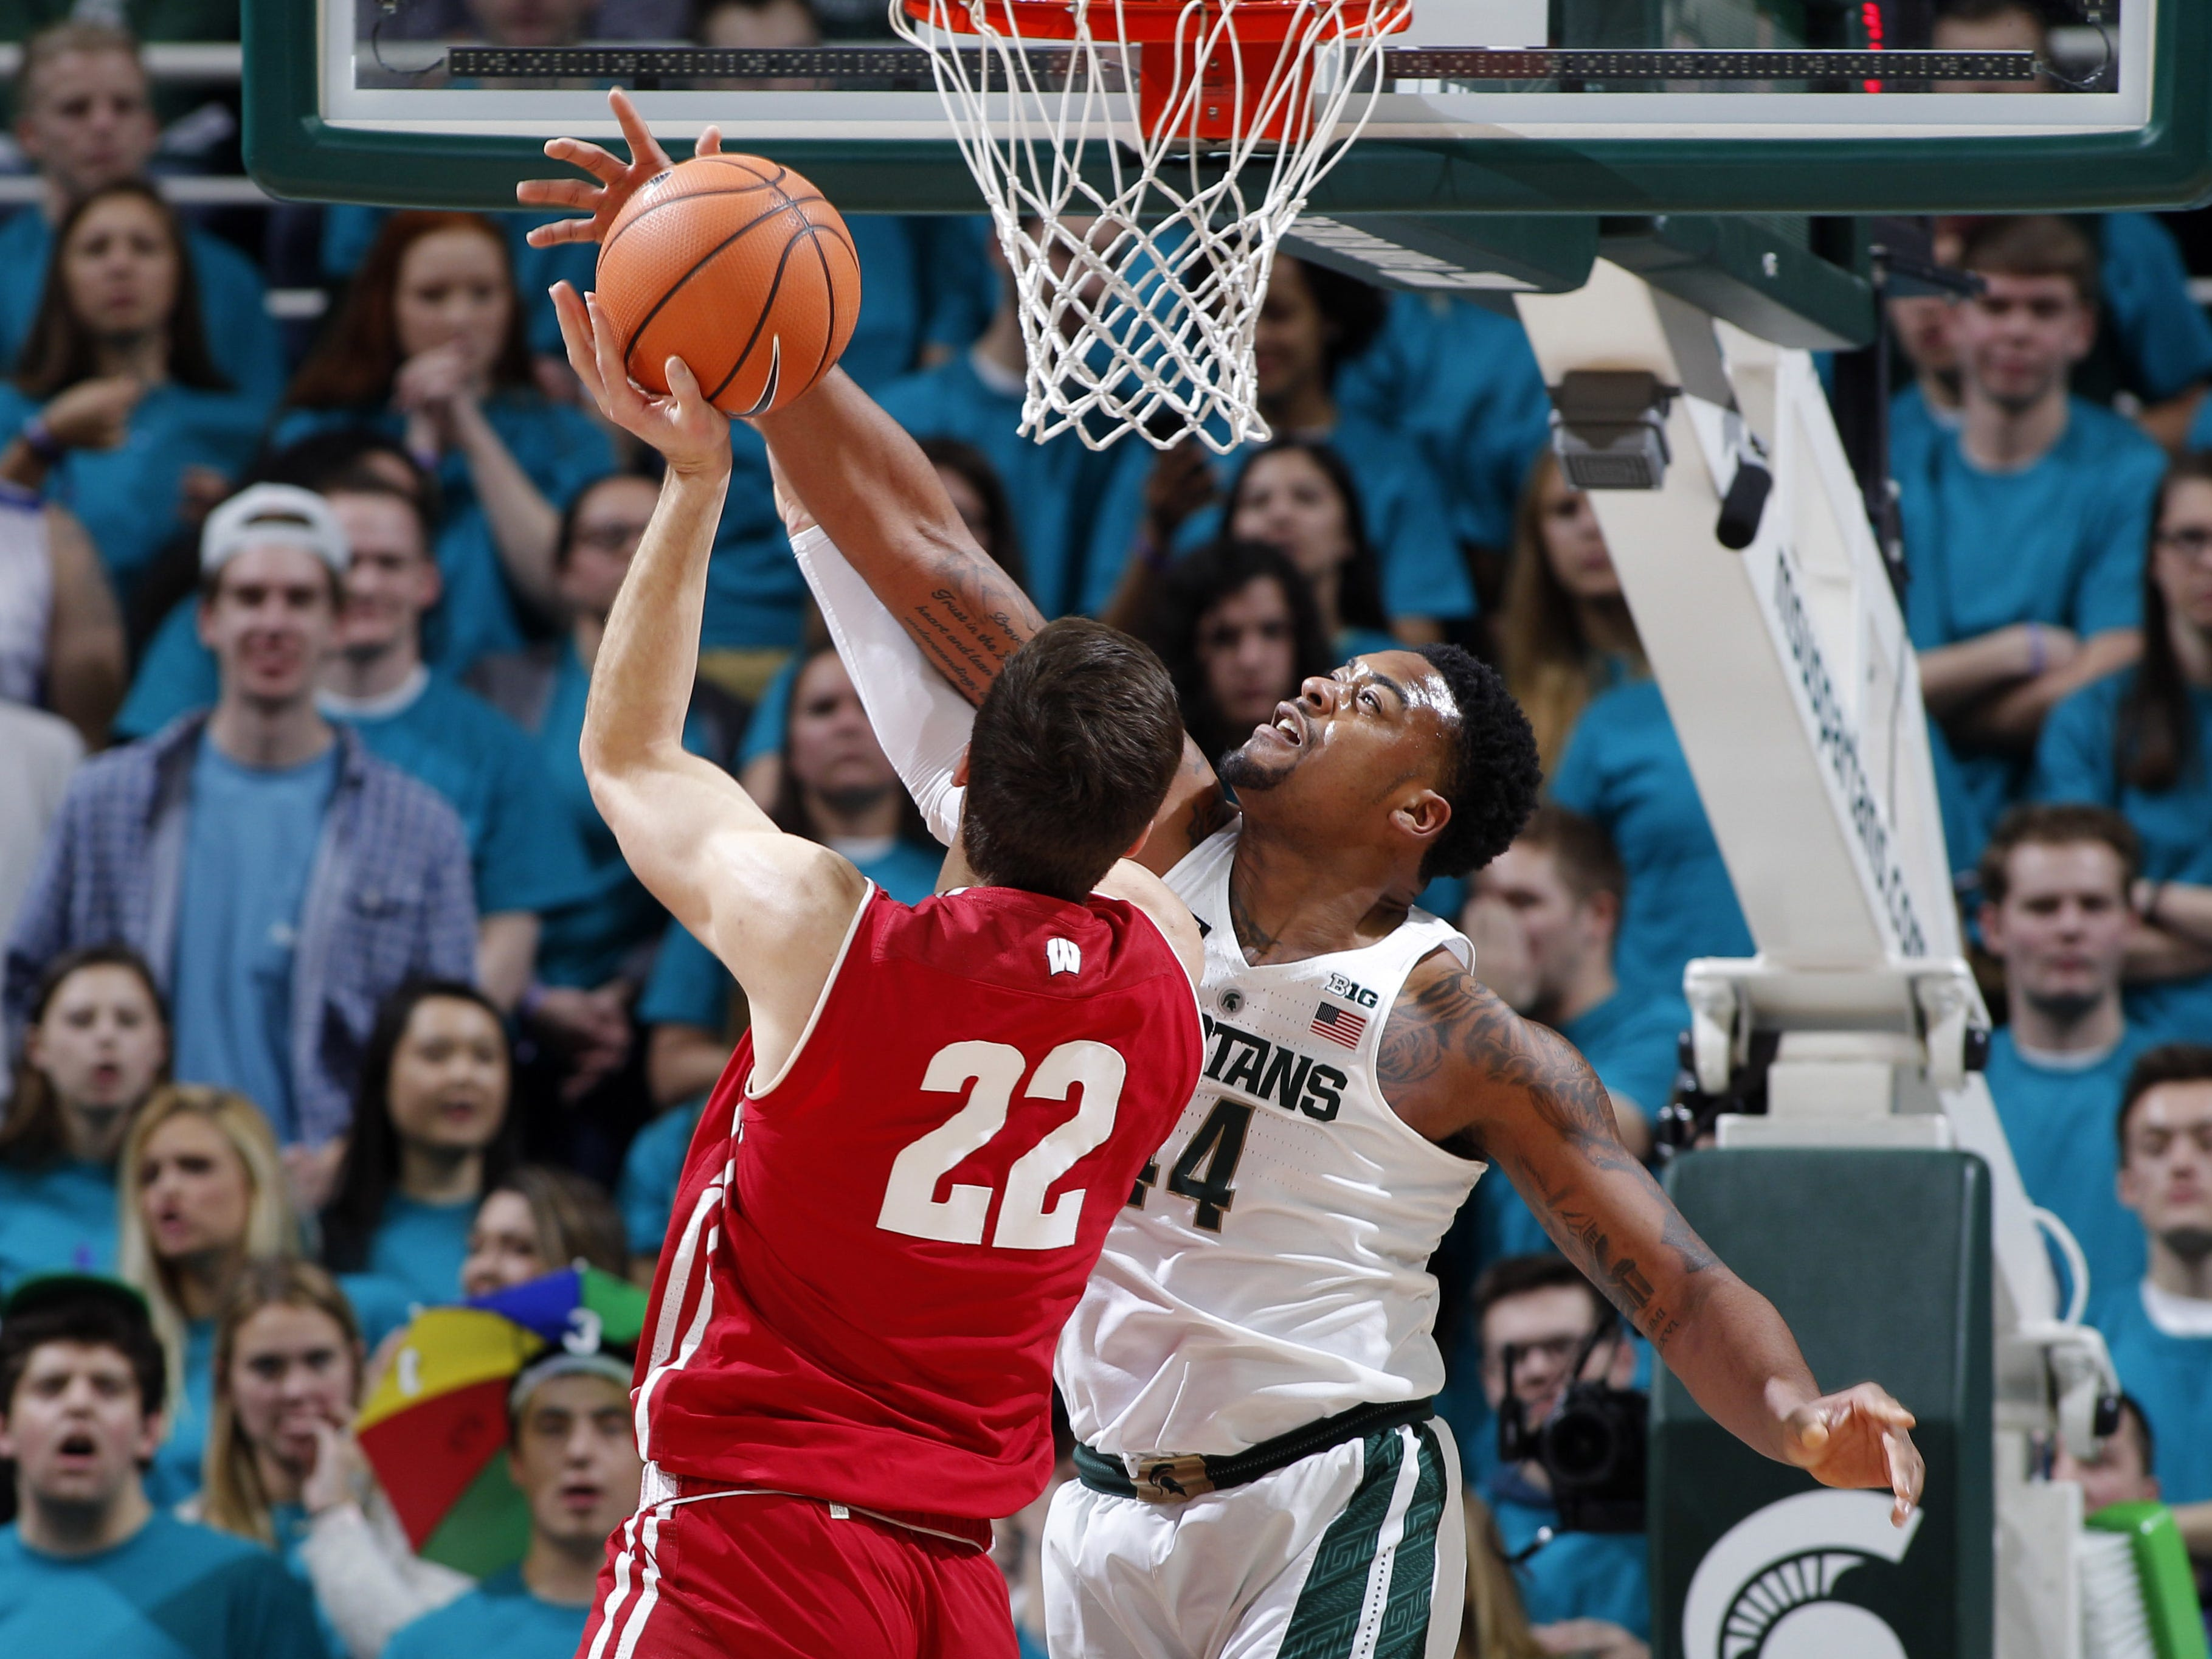 Michigan State?s Nick Ward blocks a shot by Wisconsin?s Ethan Happ during the first half Friday in East Lansing.  al goldis/AP Michigan State's Nick Ward, right, blocks a shot by Wisconsin's Ethan Happ (22) during the first half of an NCAA college basketball game Friday, Jan. 26, 2018, in East Lansing, Mich. (AP Photo/Al Goldis)